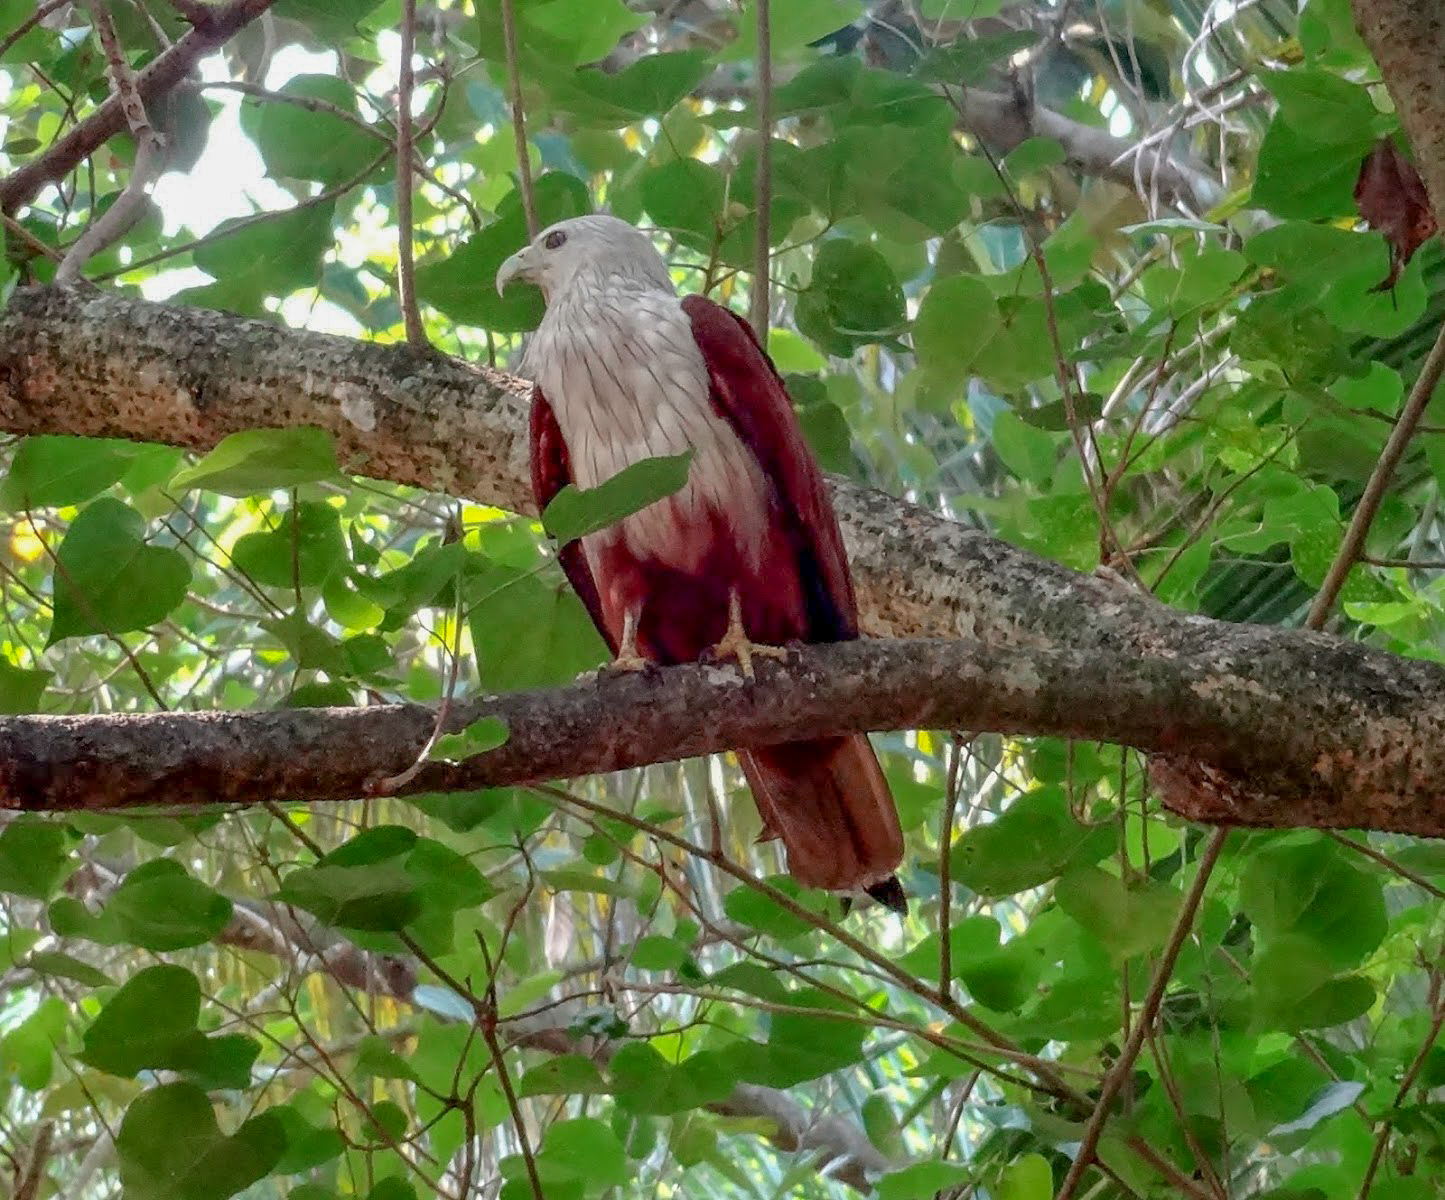 A Brahminy kite bird sits on a tree branch, behind are green leaves, in the Kappil Backwaters, Kerala, India